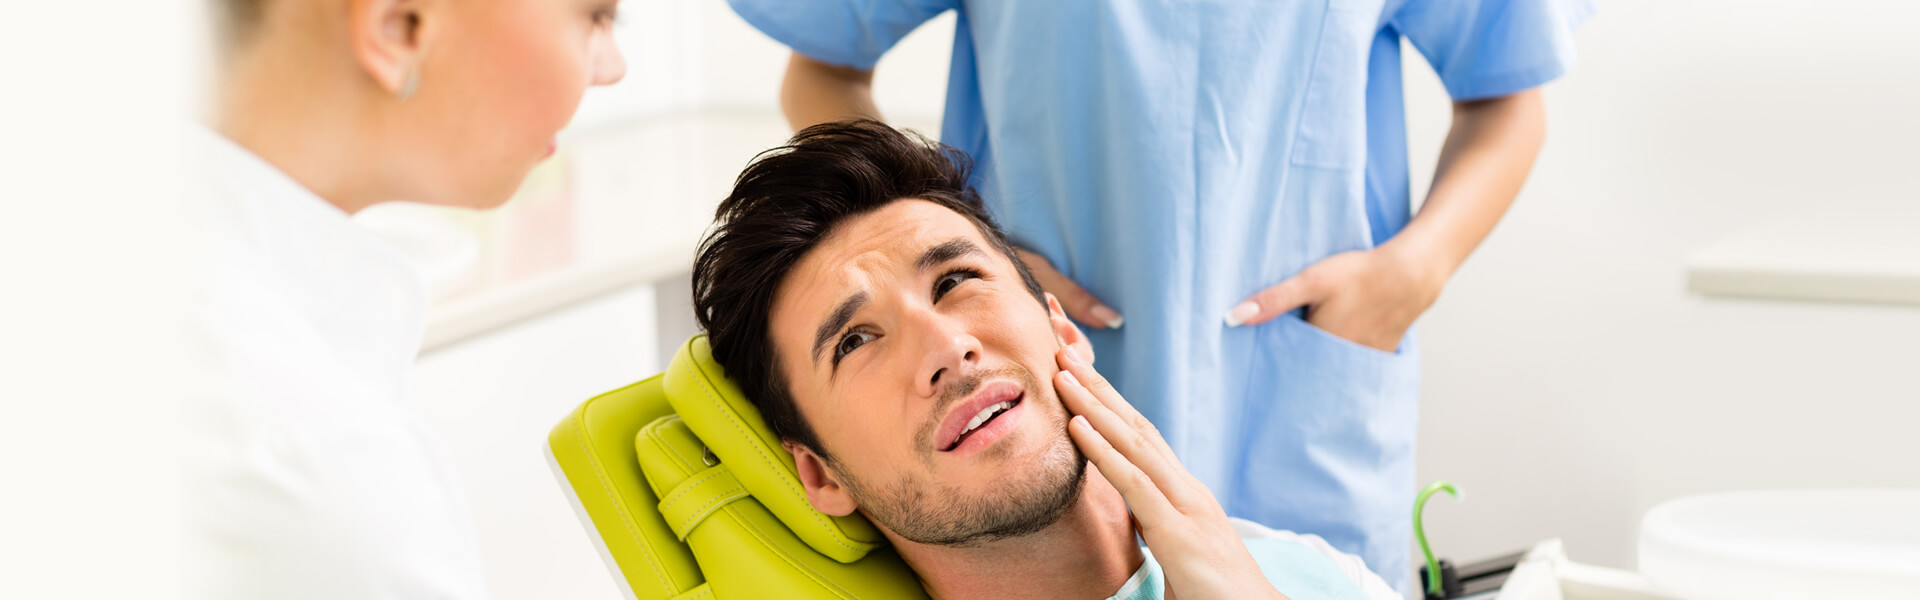 Compelling Reasons Why You Need to Consider an Emergency Dental Treatment